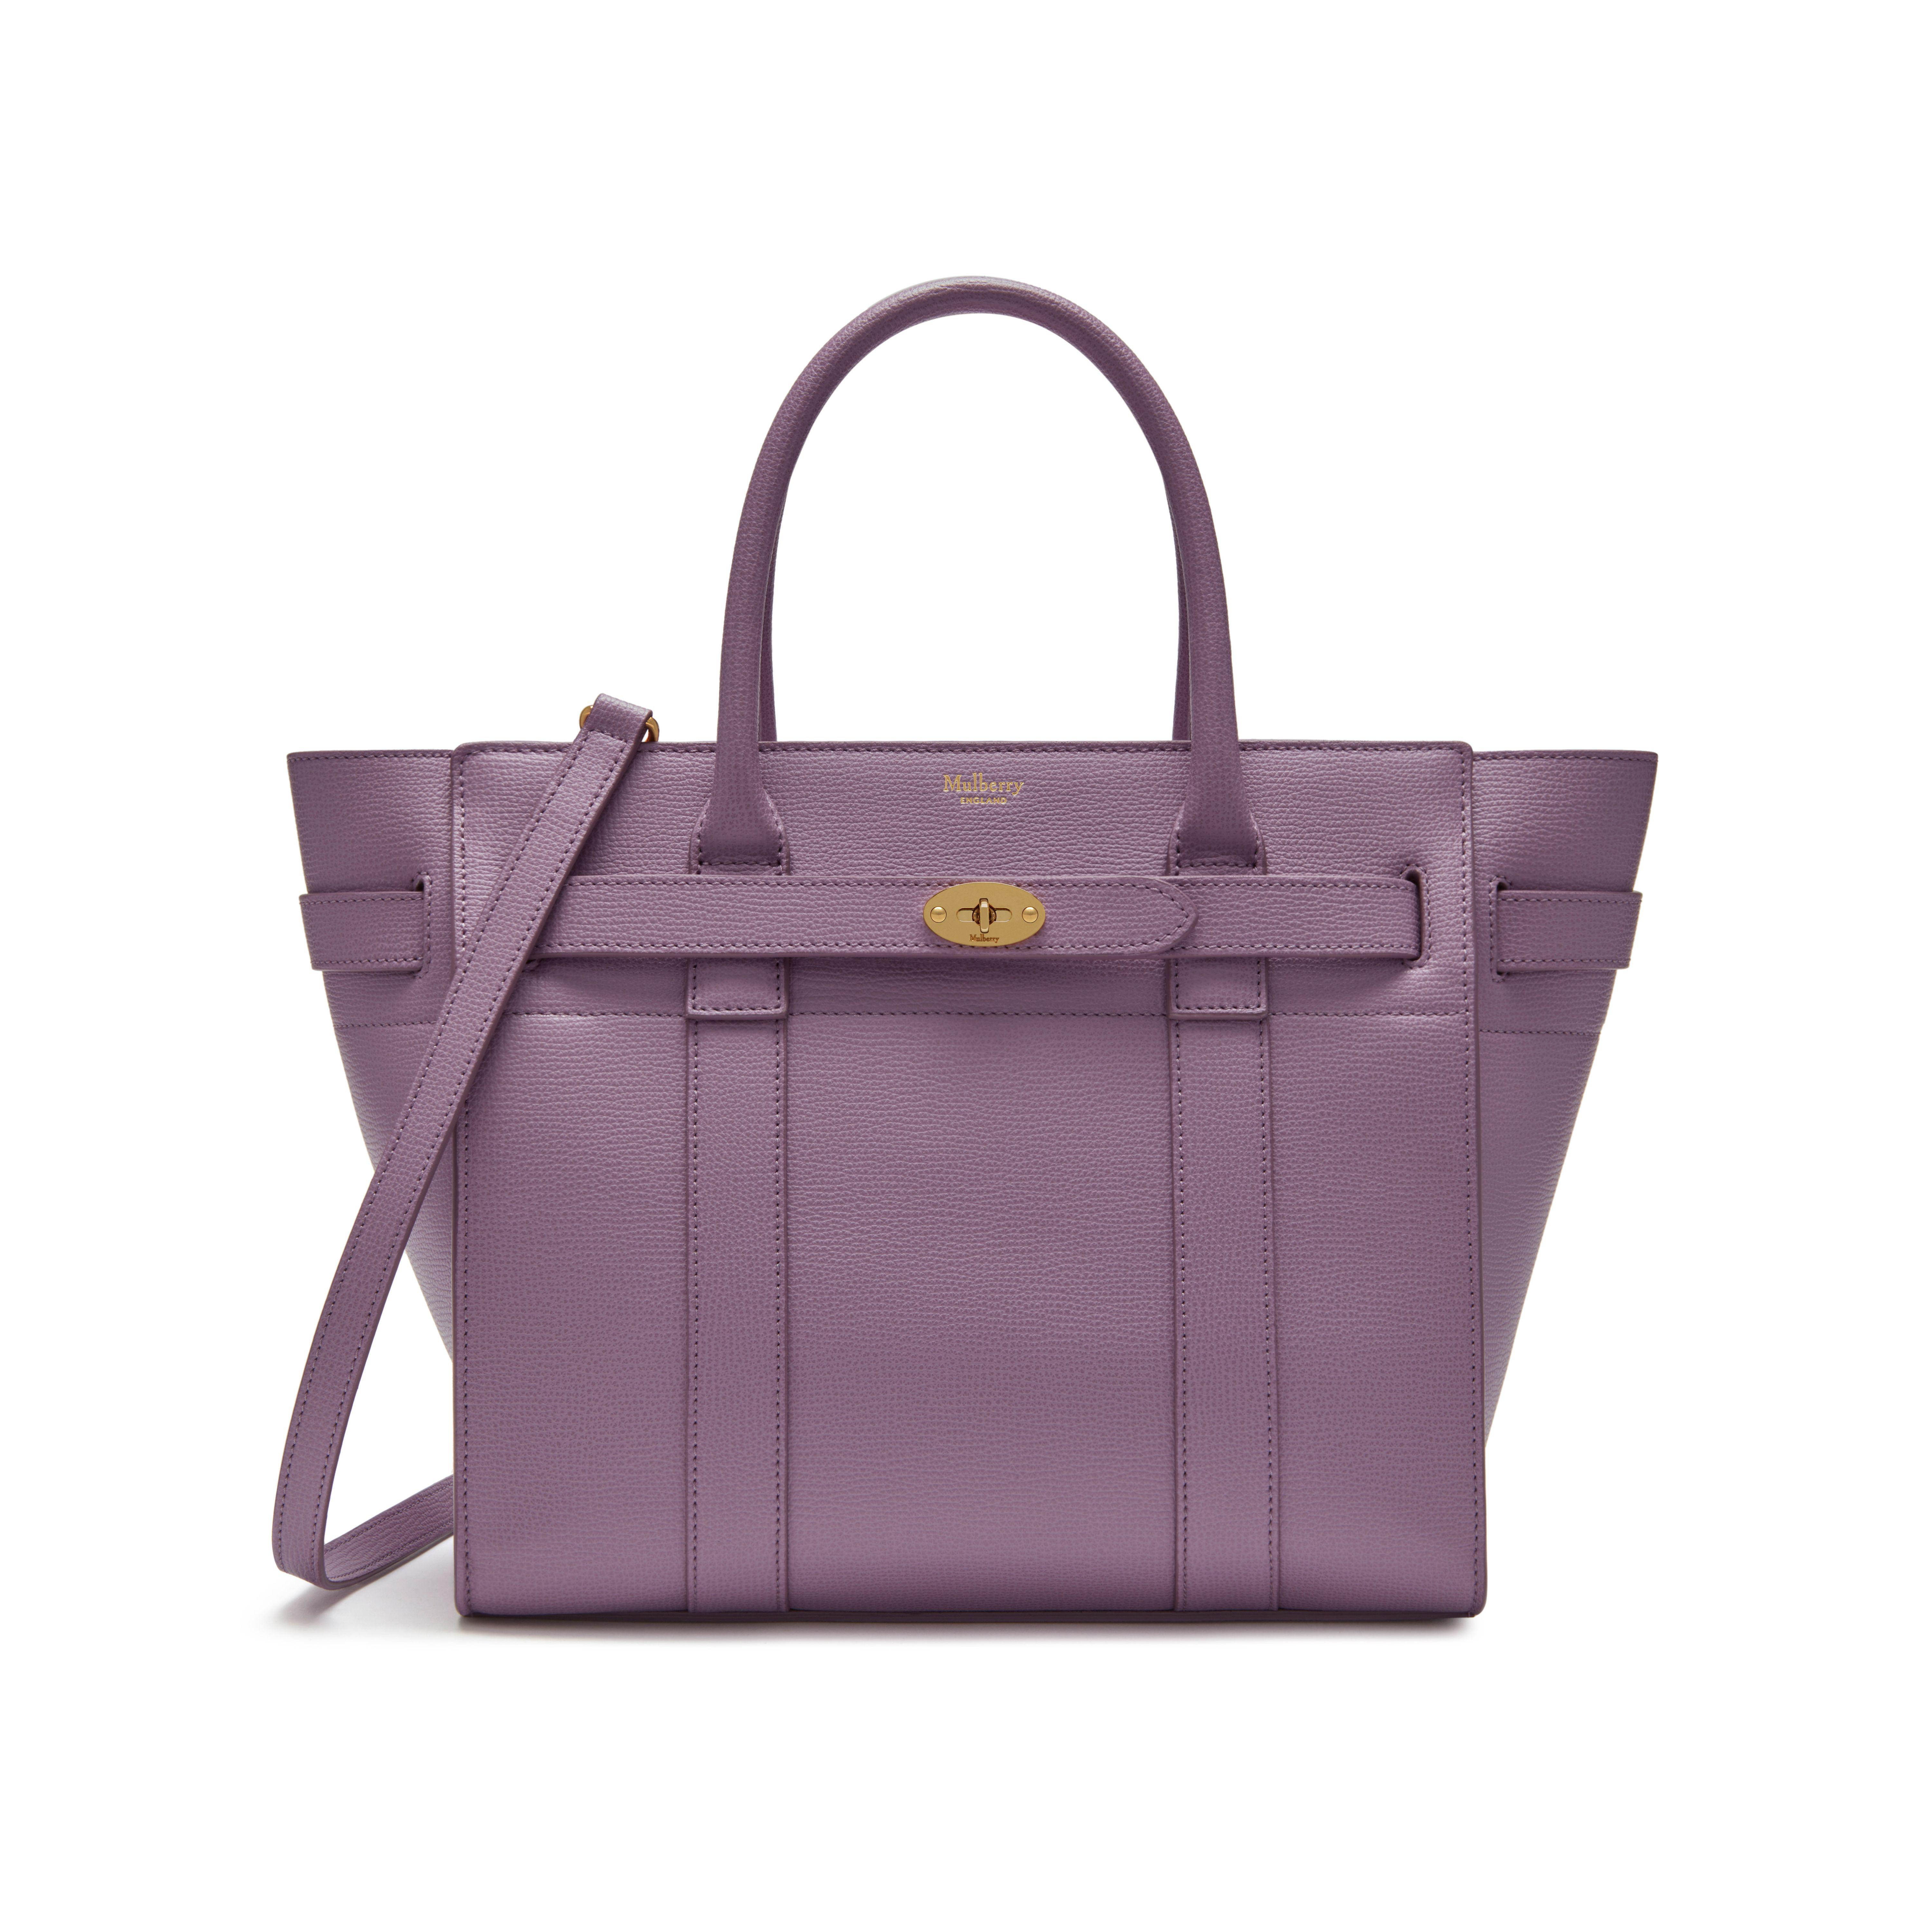 Mulberry Small Zipped Bayswater in Purple - Lyst 795d3cb1f3209